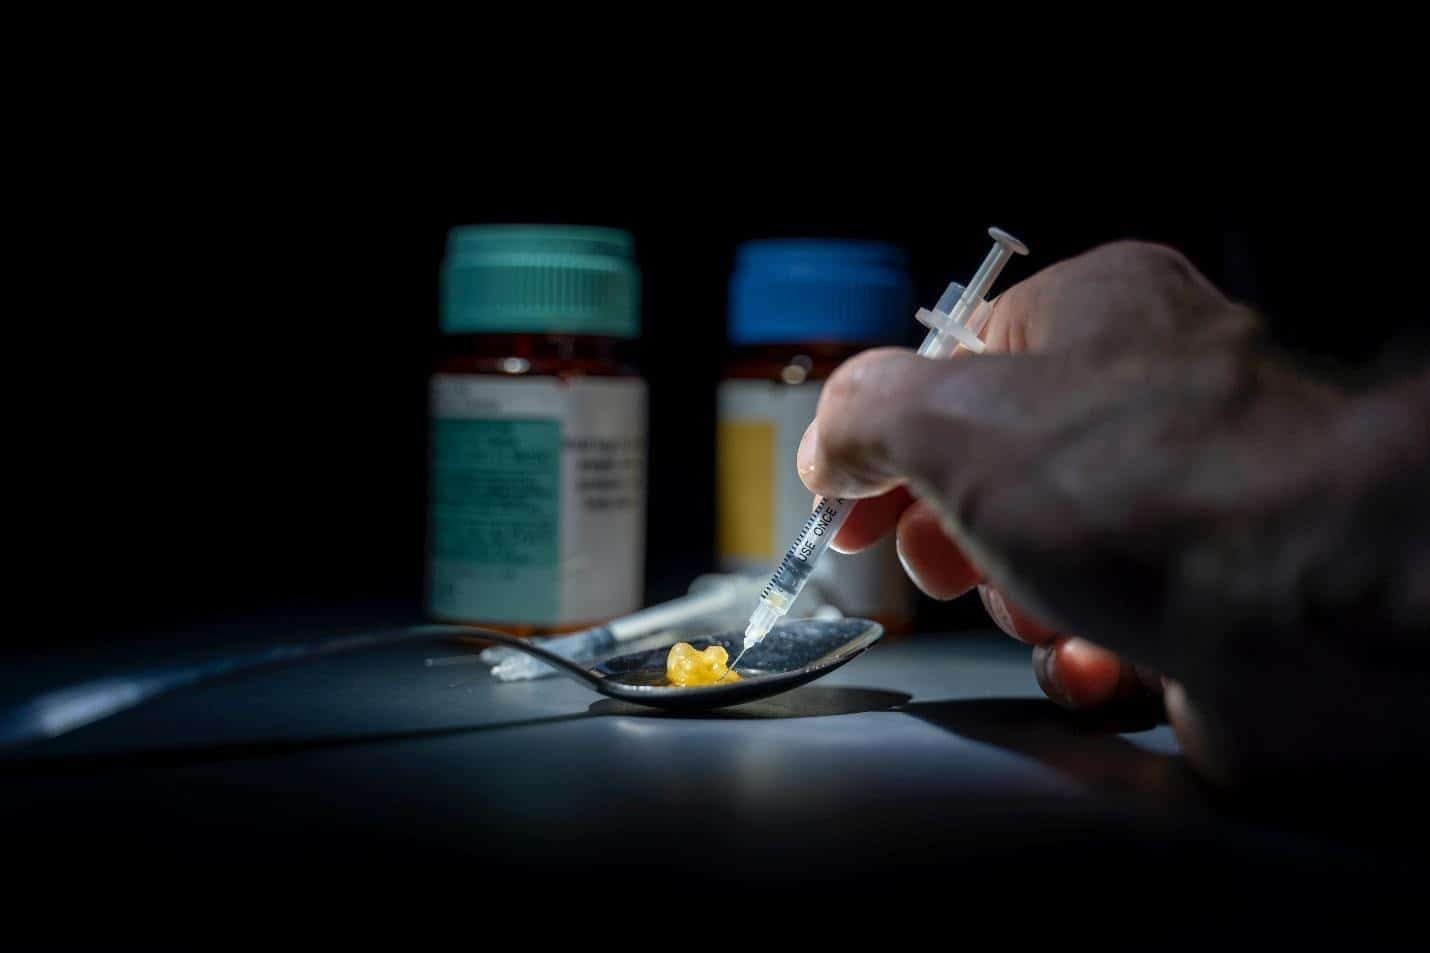 a needle injecting heroin on a spoon as one battles heroin addiction and seeks help at an addiction rehab center